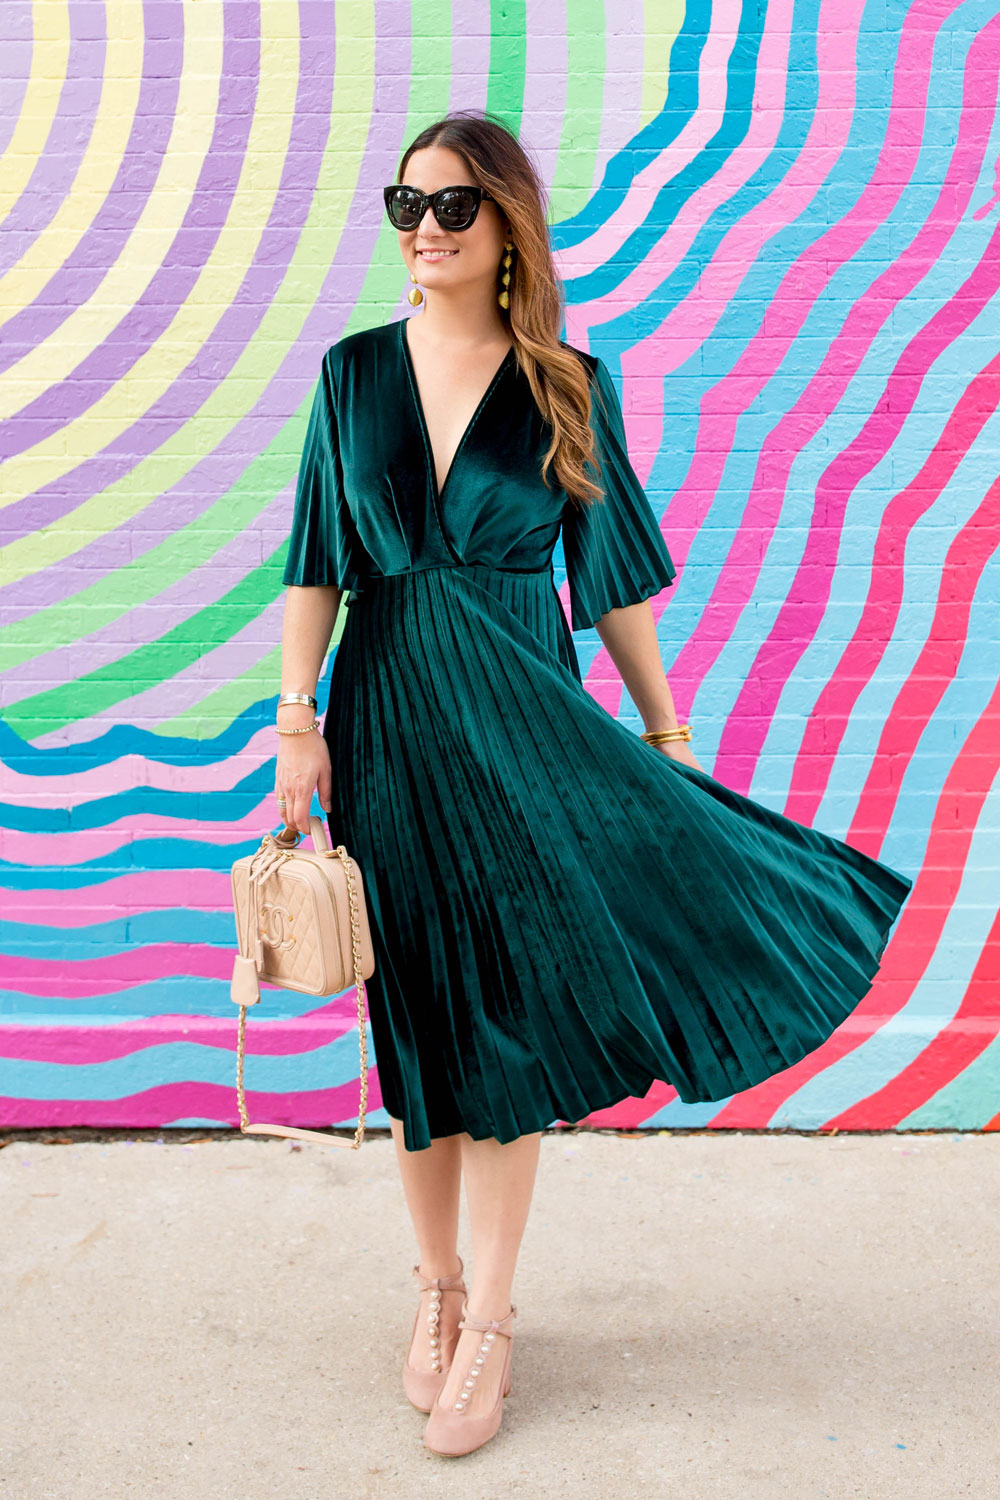 ASOS Green Velvet Pleated Fit and Flare Midi Dress